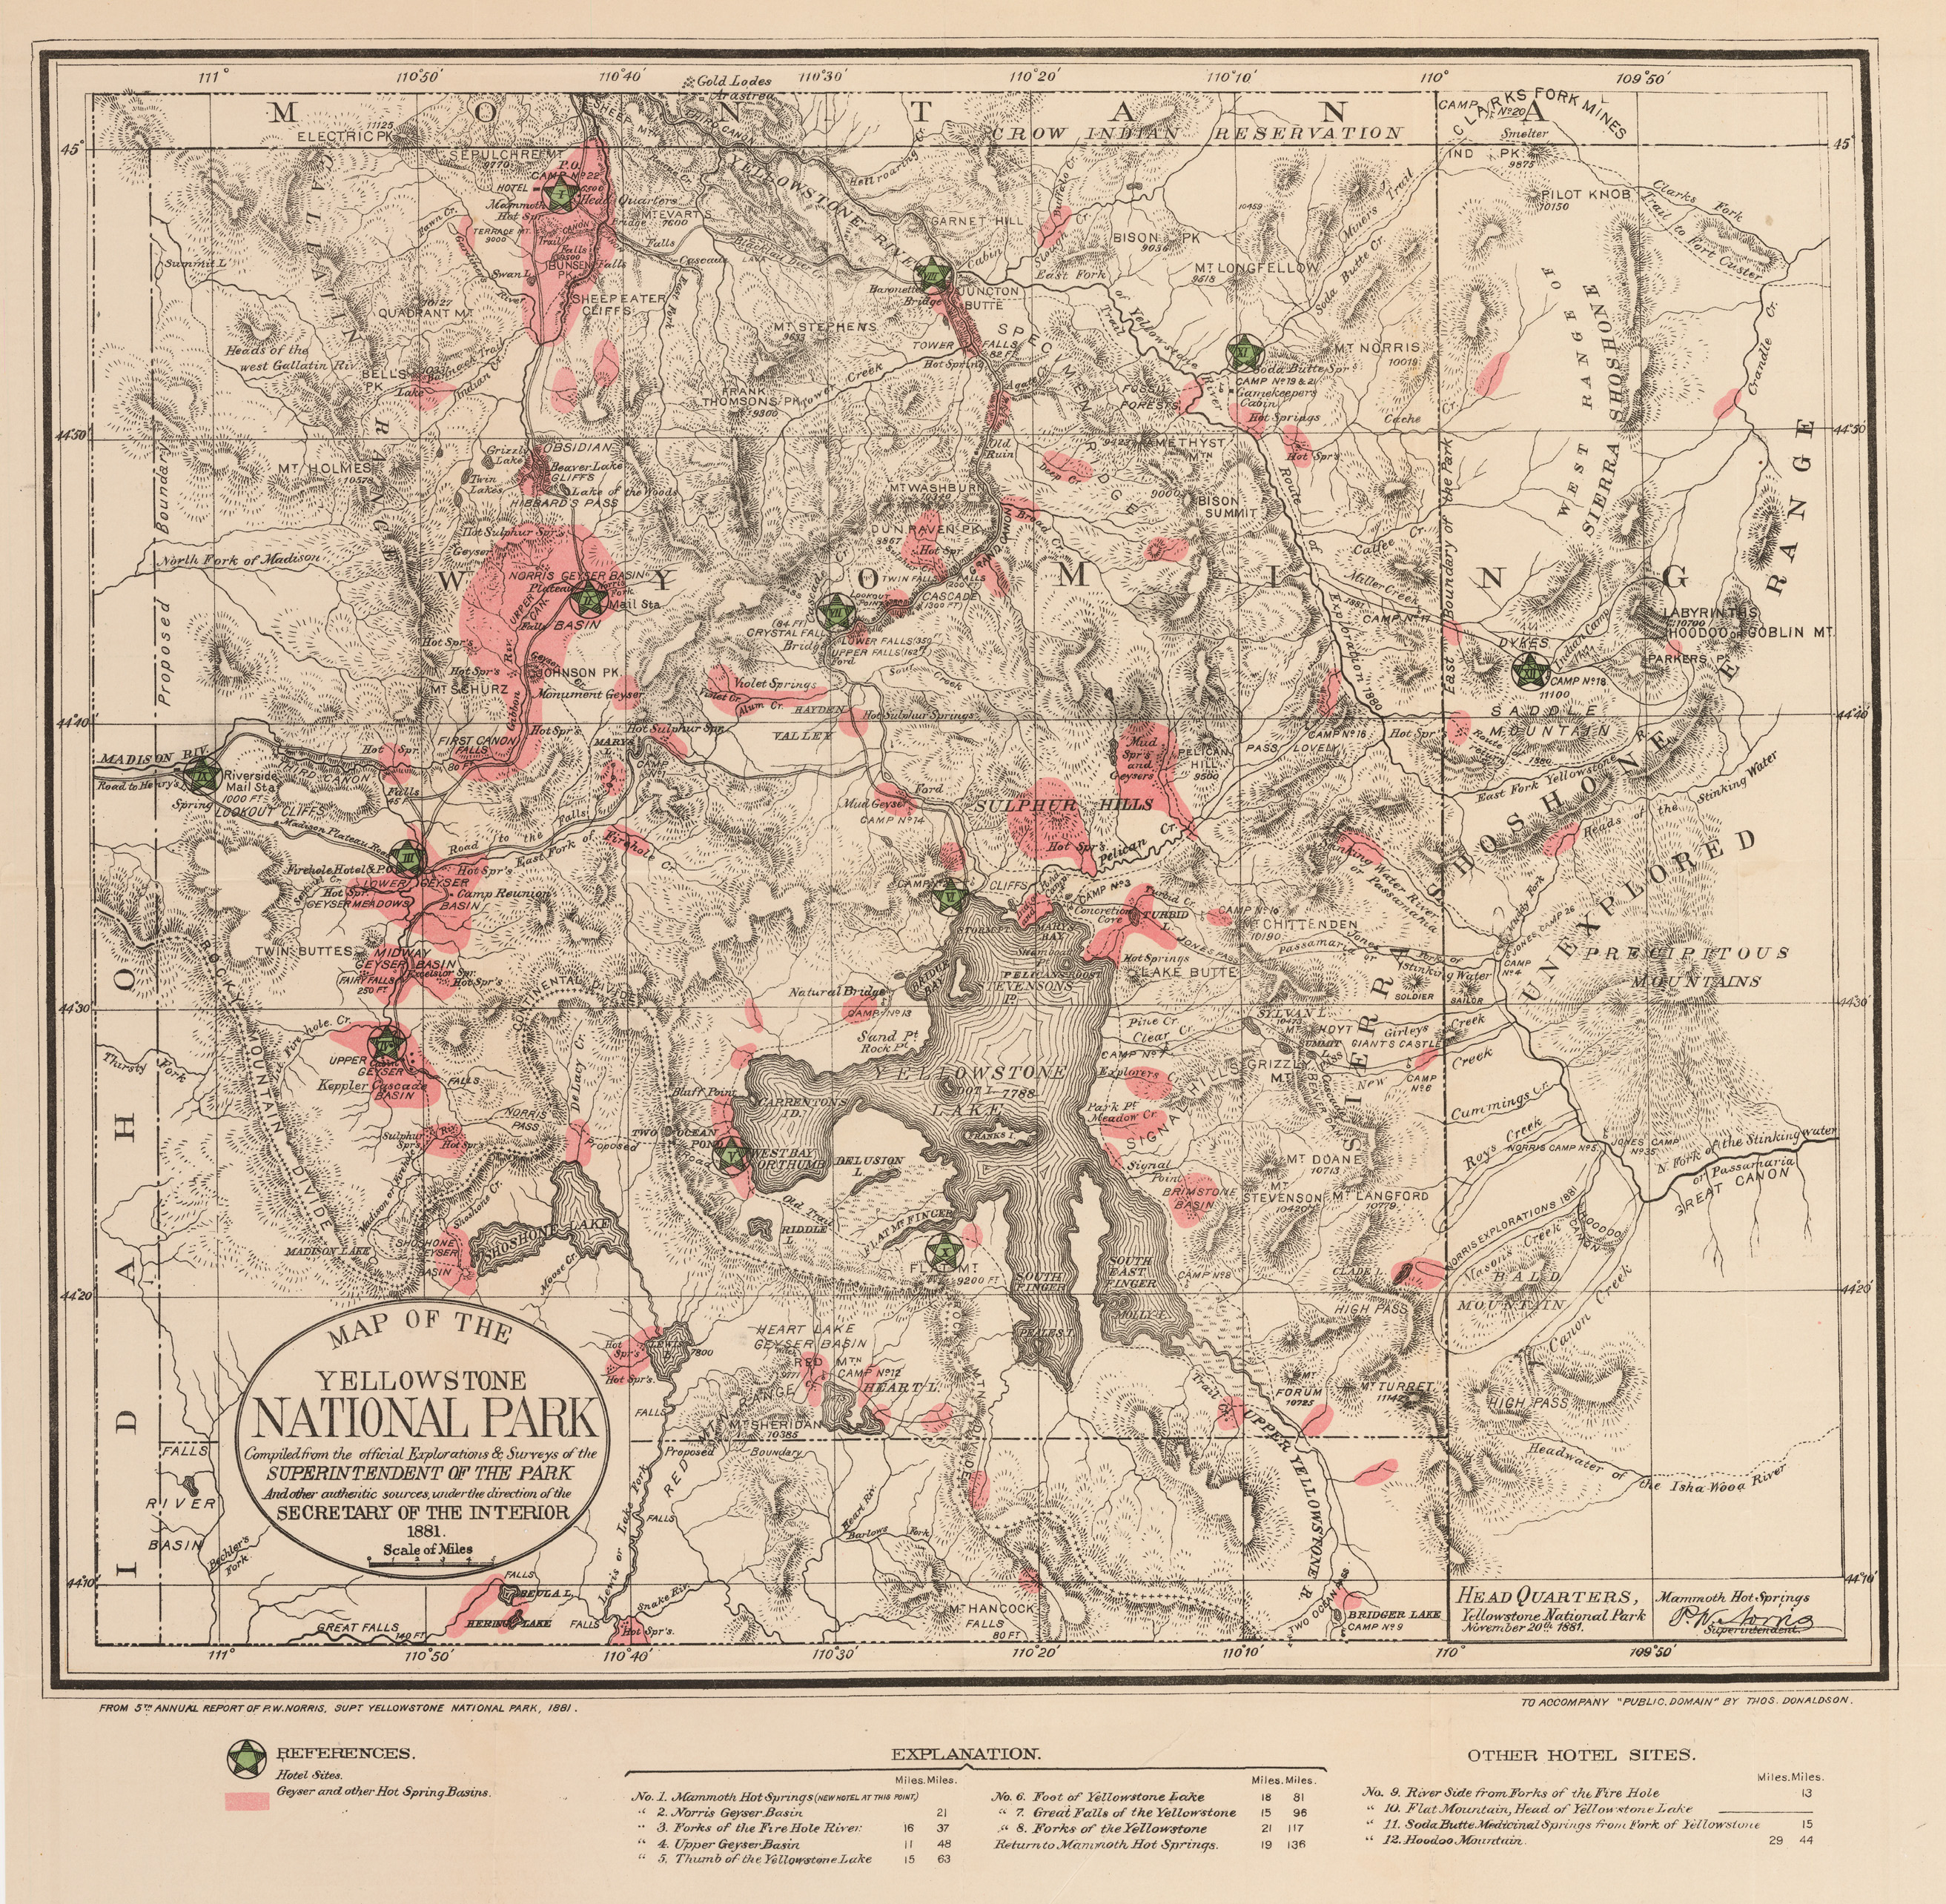 Antique Map of the Yellowstone National Park 1881 : hjbmaps.com ...